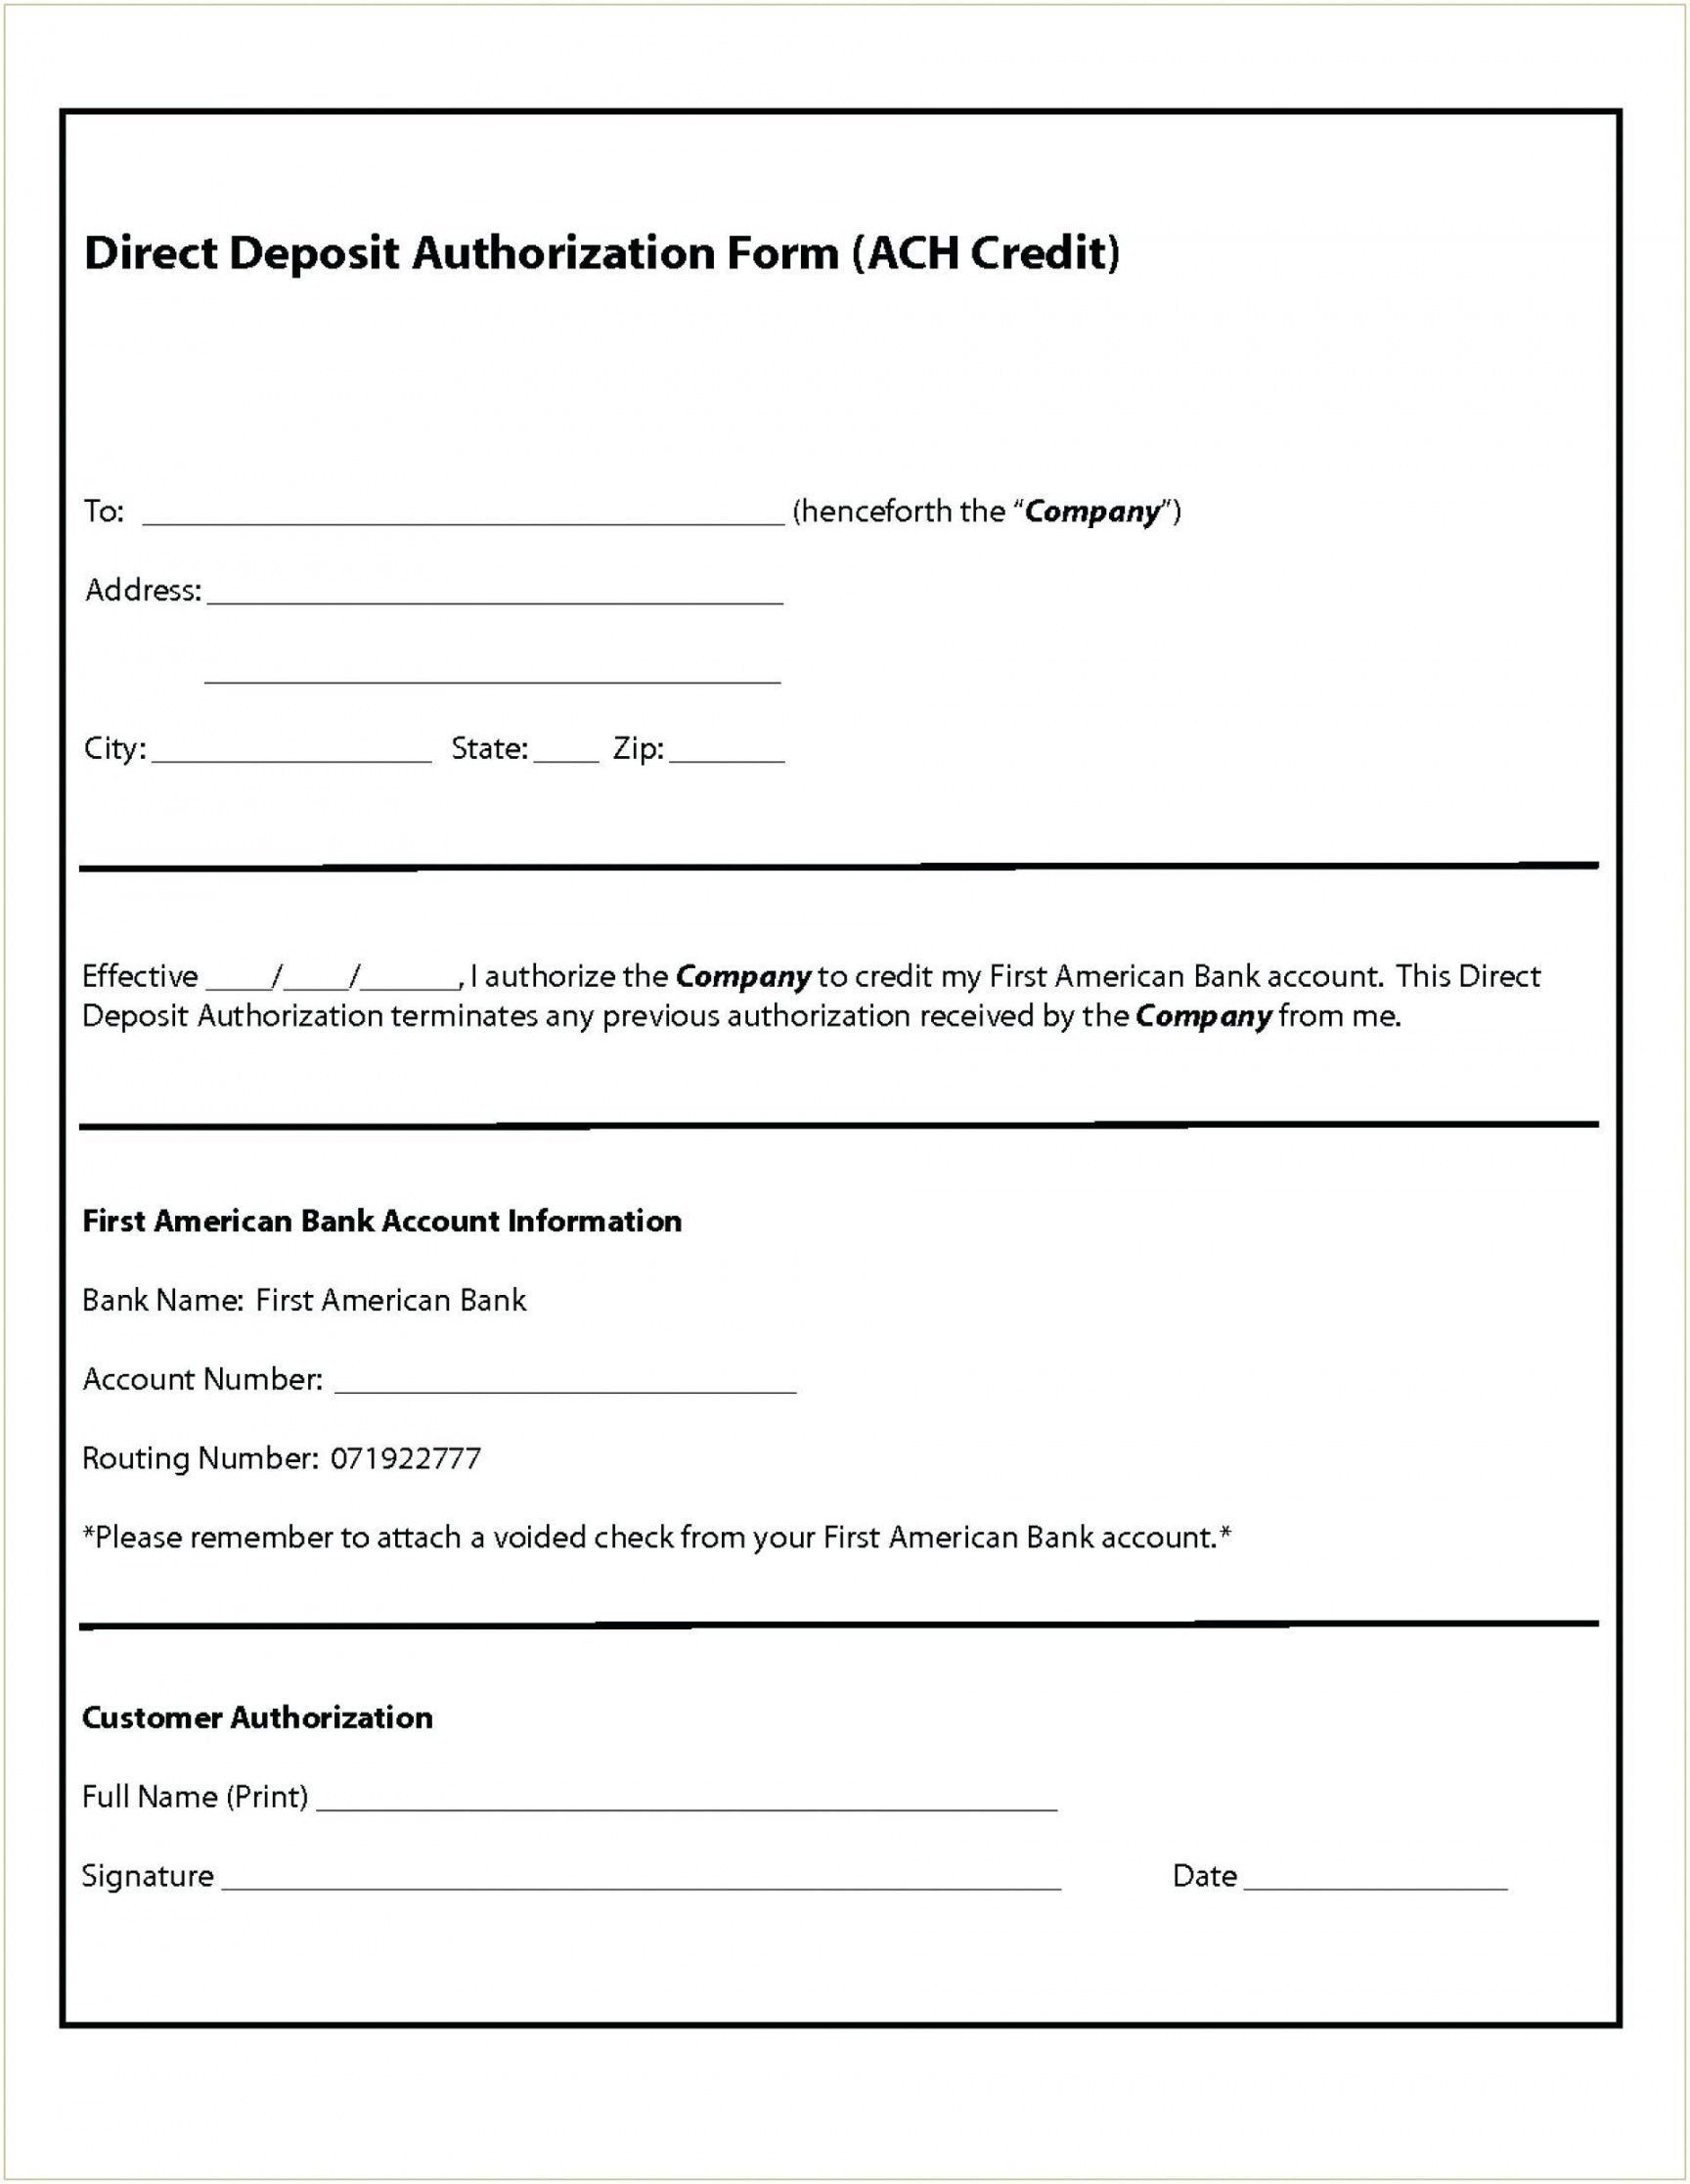 000 Magnificent Direct Deposit Form Template Photo  Multiple Account Ach AuthorizationFull